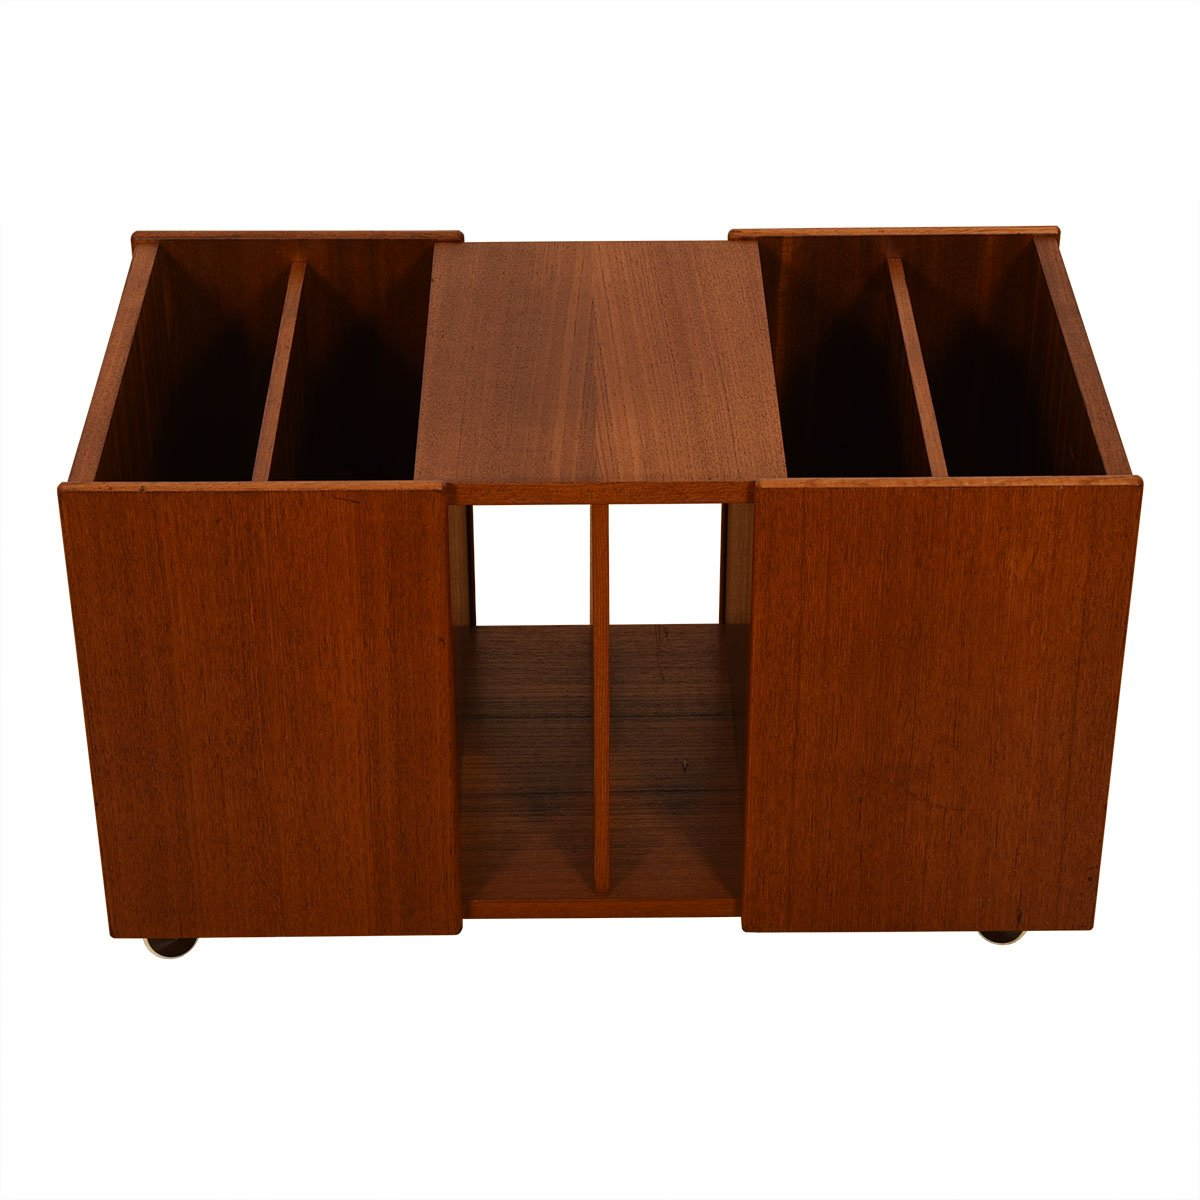 Long Danish Teak Rolling Slotted Magazine Cart / End Table.